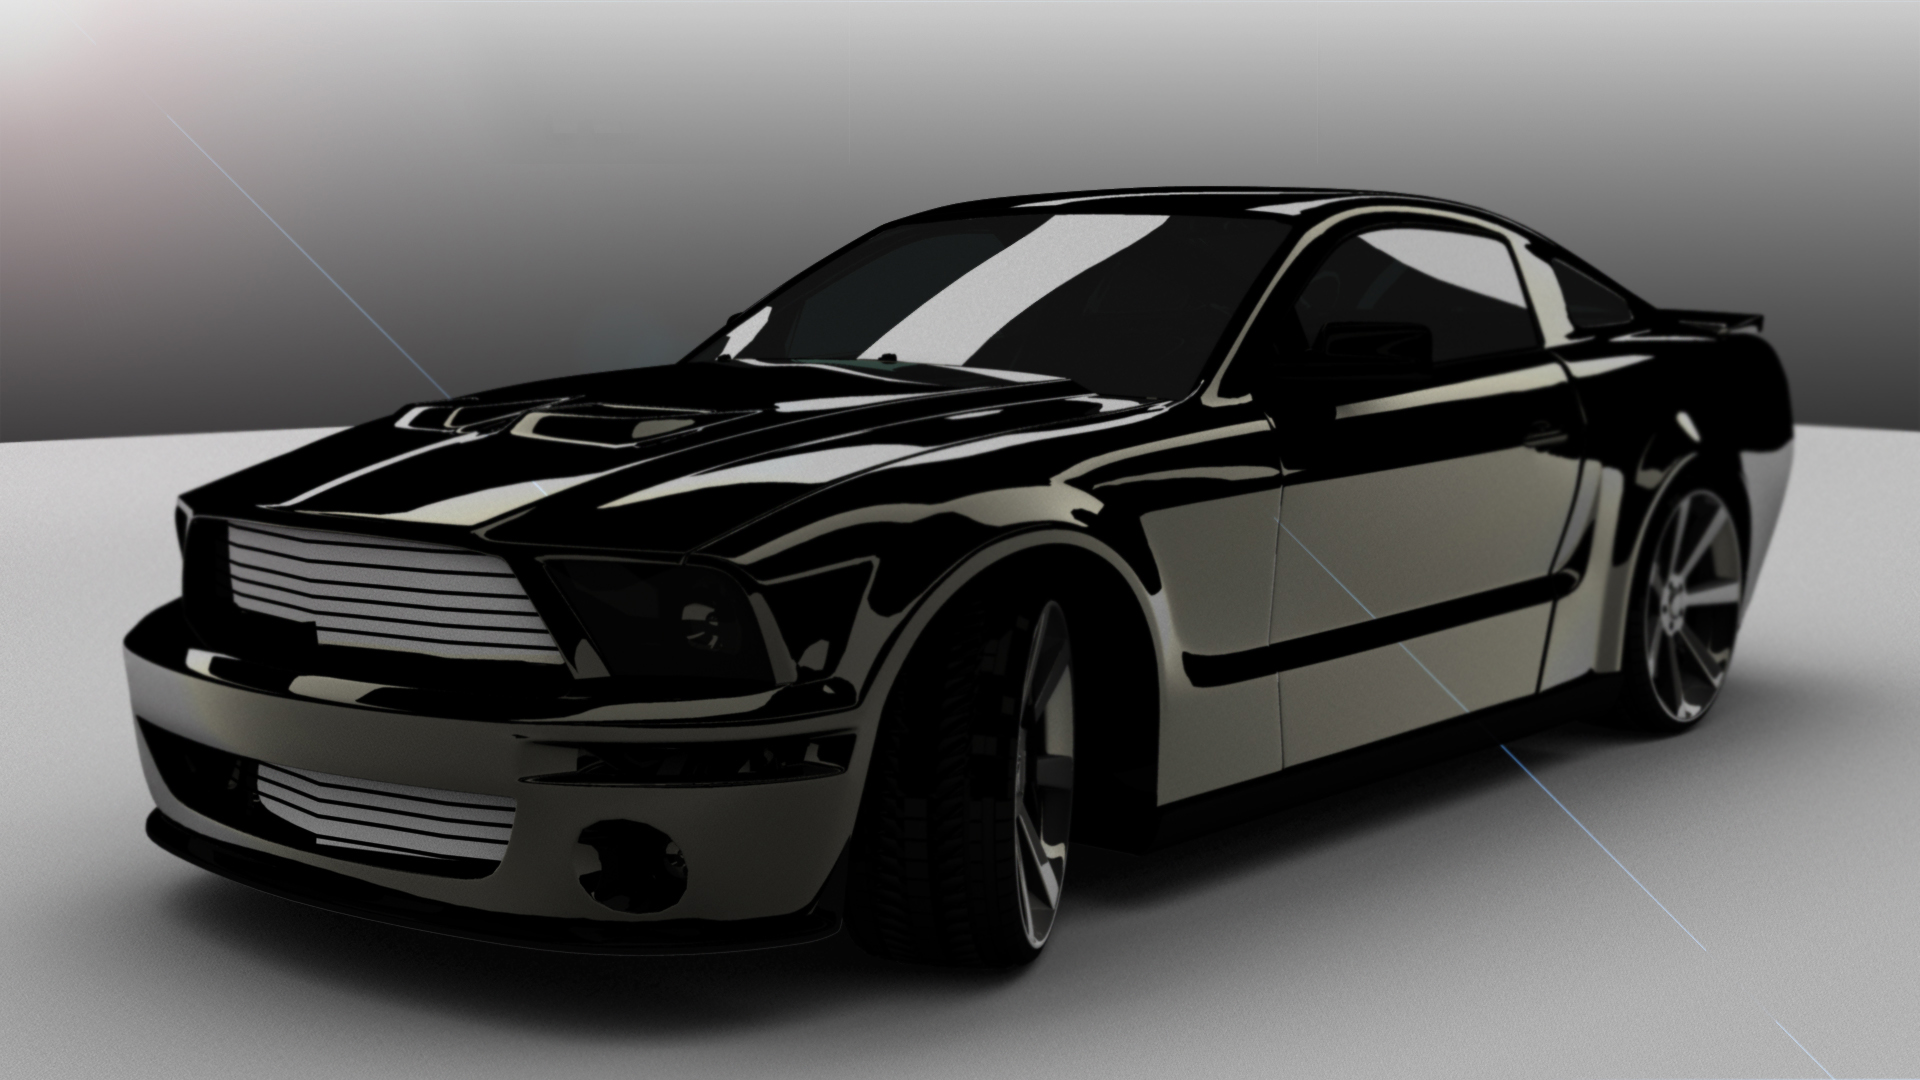 Black hot cars wallpaper 30 background - Car wallpaper black and white ...